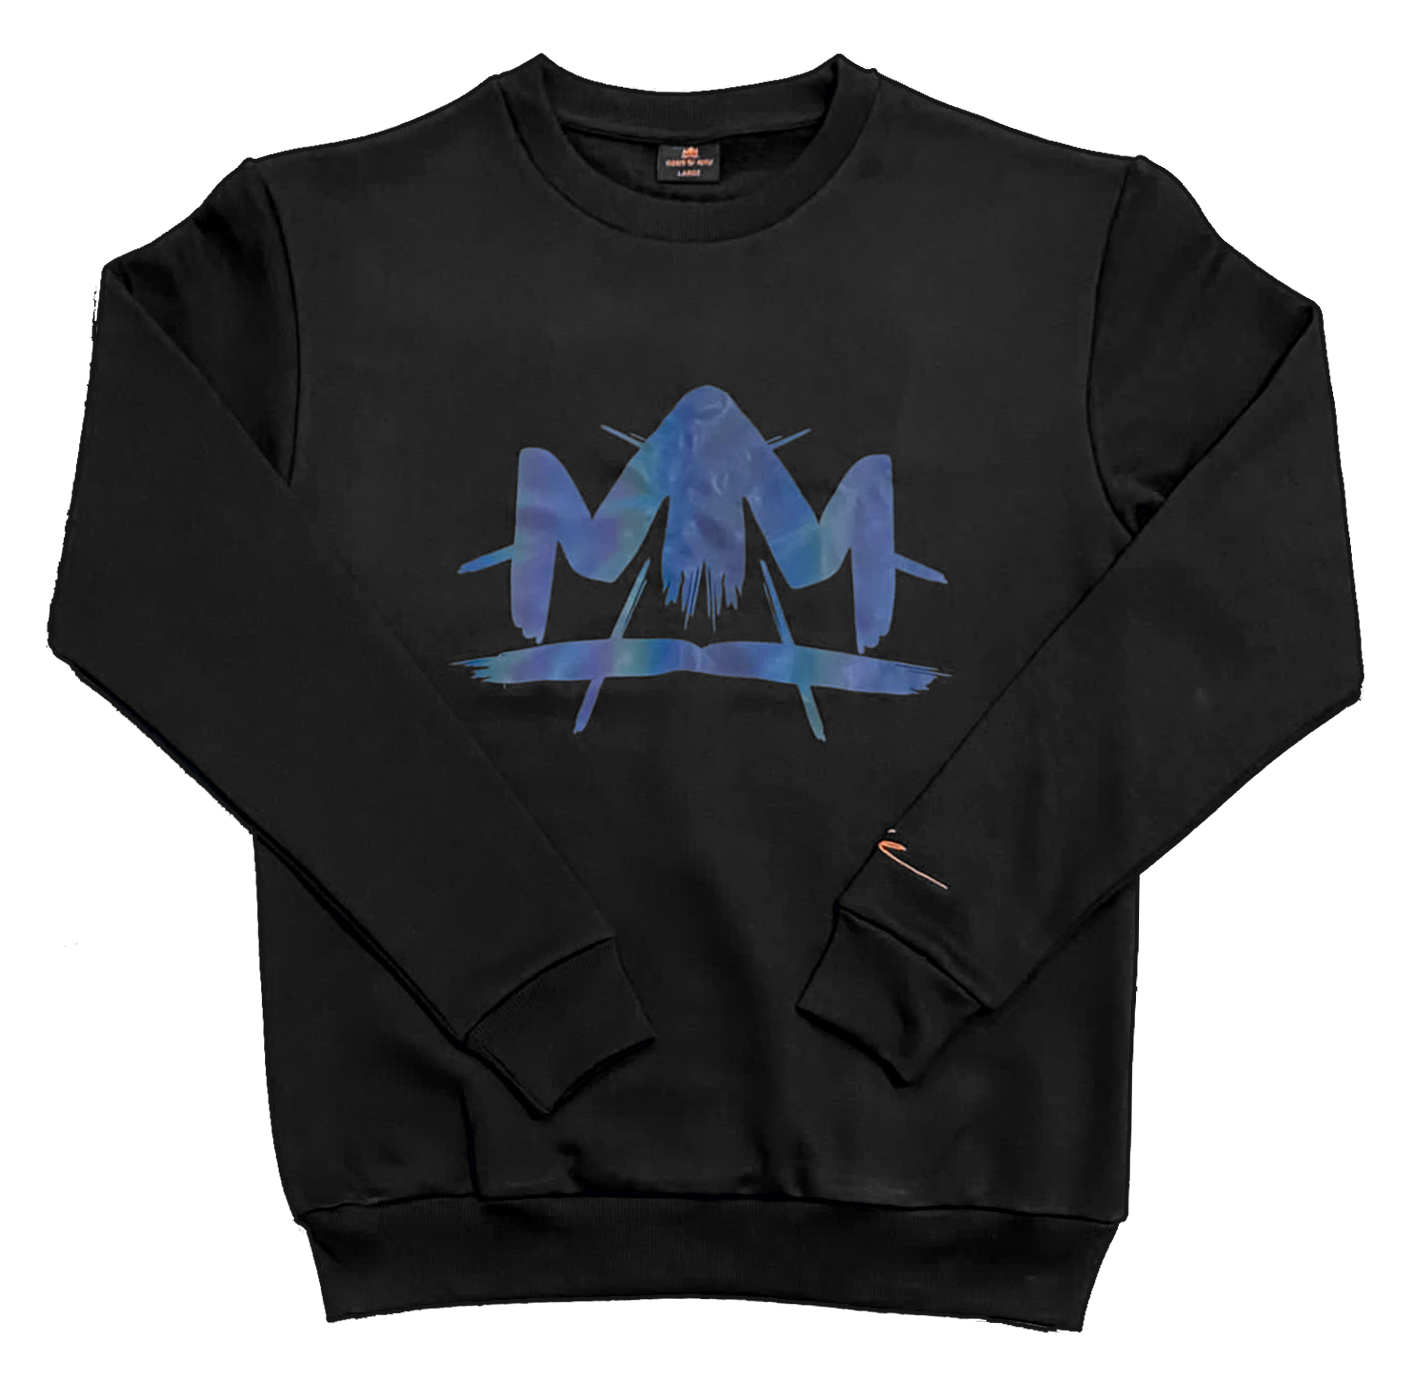 MM Reflective Crewneck